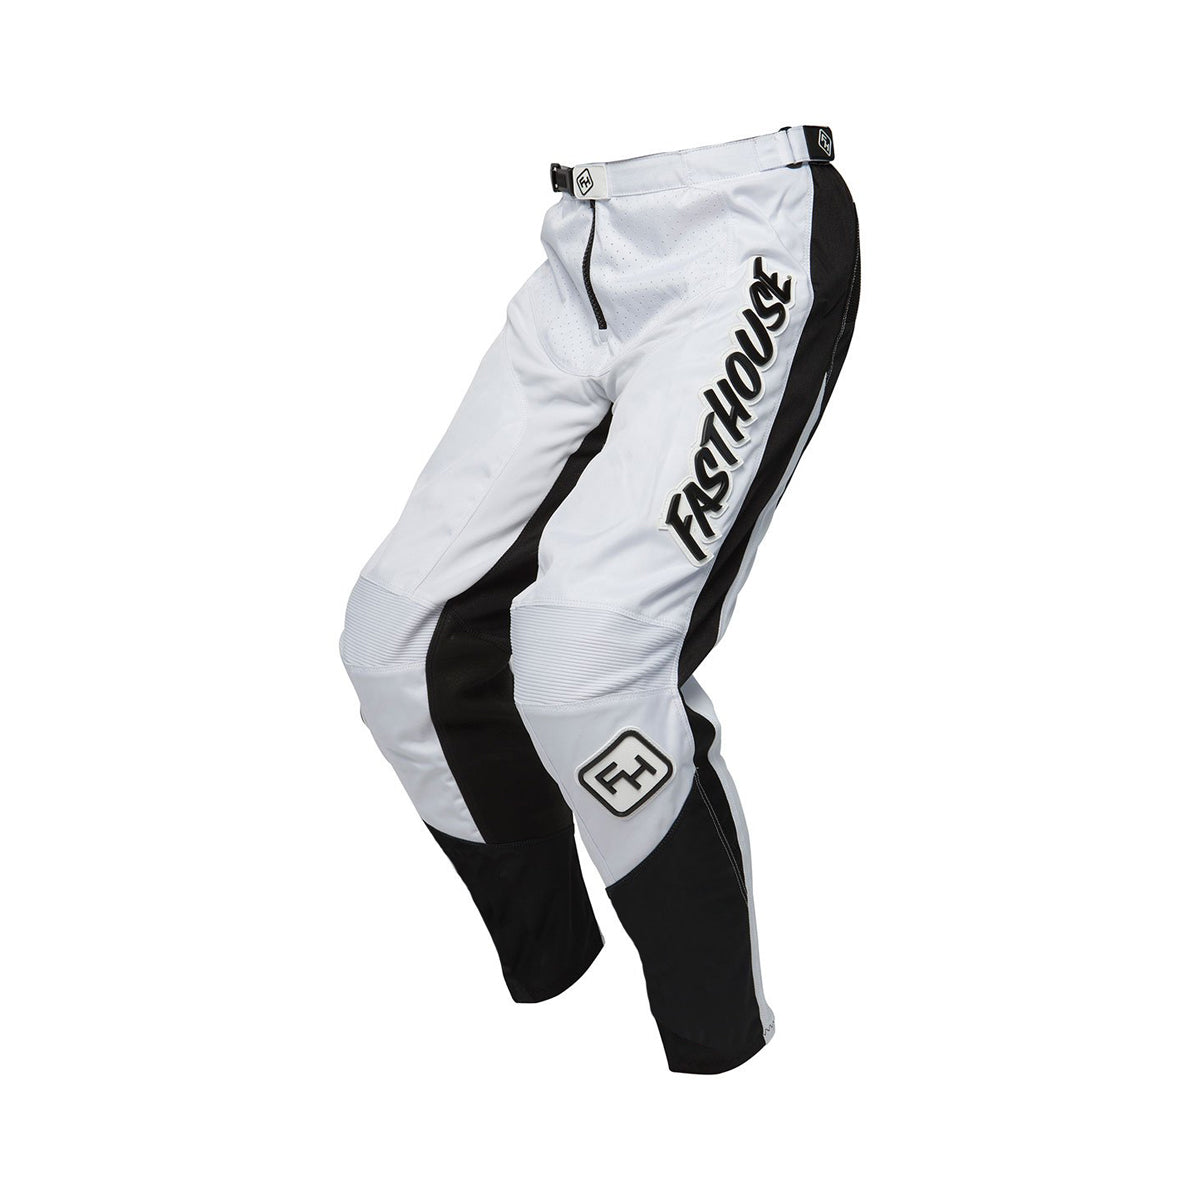 Fasthouse - Grindhouse Youth Pant - White